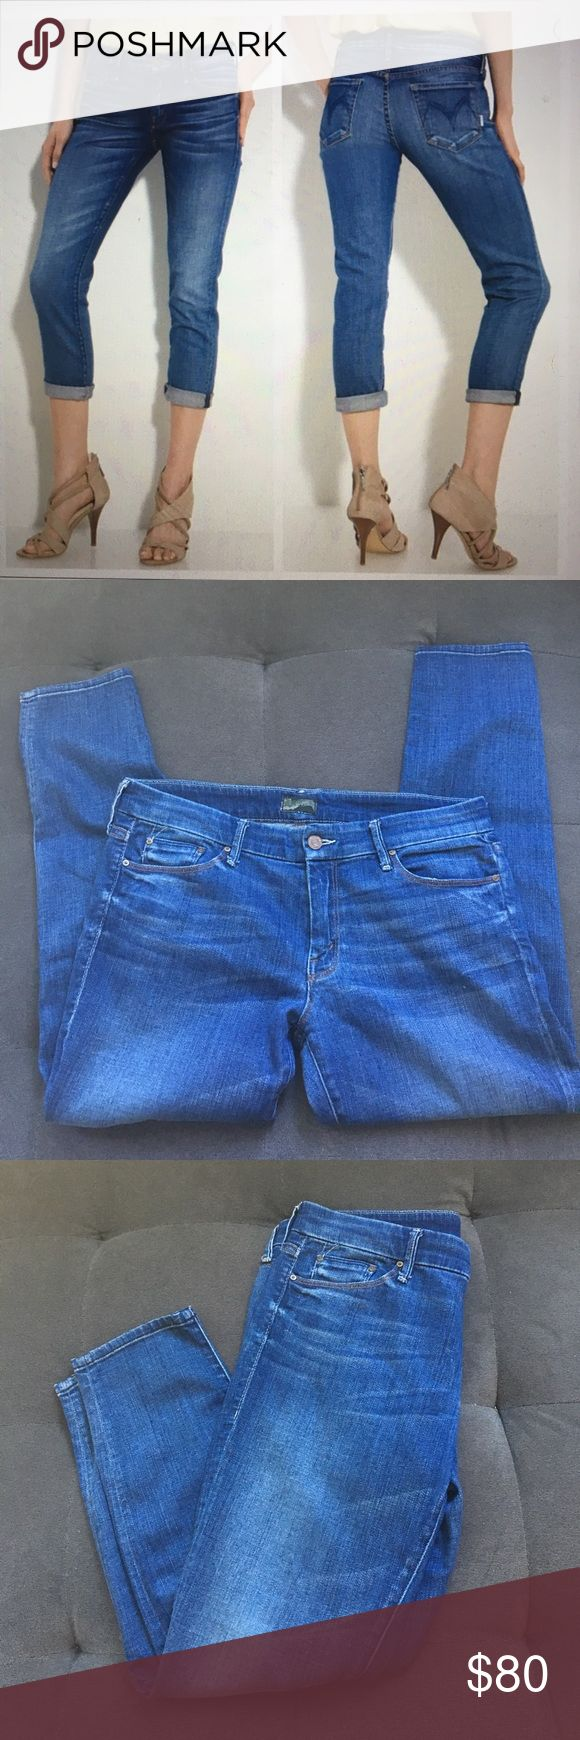 """MOTHER """"The Looker Crop""""  Cry of The Peacock Size 31 Gently used Mother Denim cropped jeans in """"Cry of The Peacock,"""" a medium blue with whiskering. No visible flaws.   About 16.5"""" front waist (laying flat)  About 26"""" inseam About 8.5"""" front rise    For measurements or additional information please comment below! We are fast to respond! Ships same day/next day M-SAT before 3PM PST. Please, no price discussion in comment. No trades, thank you! We accept reasonable offers using the offer button…"""